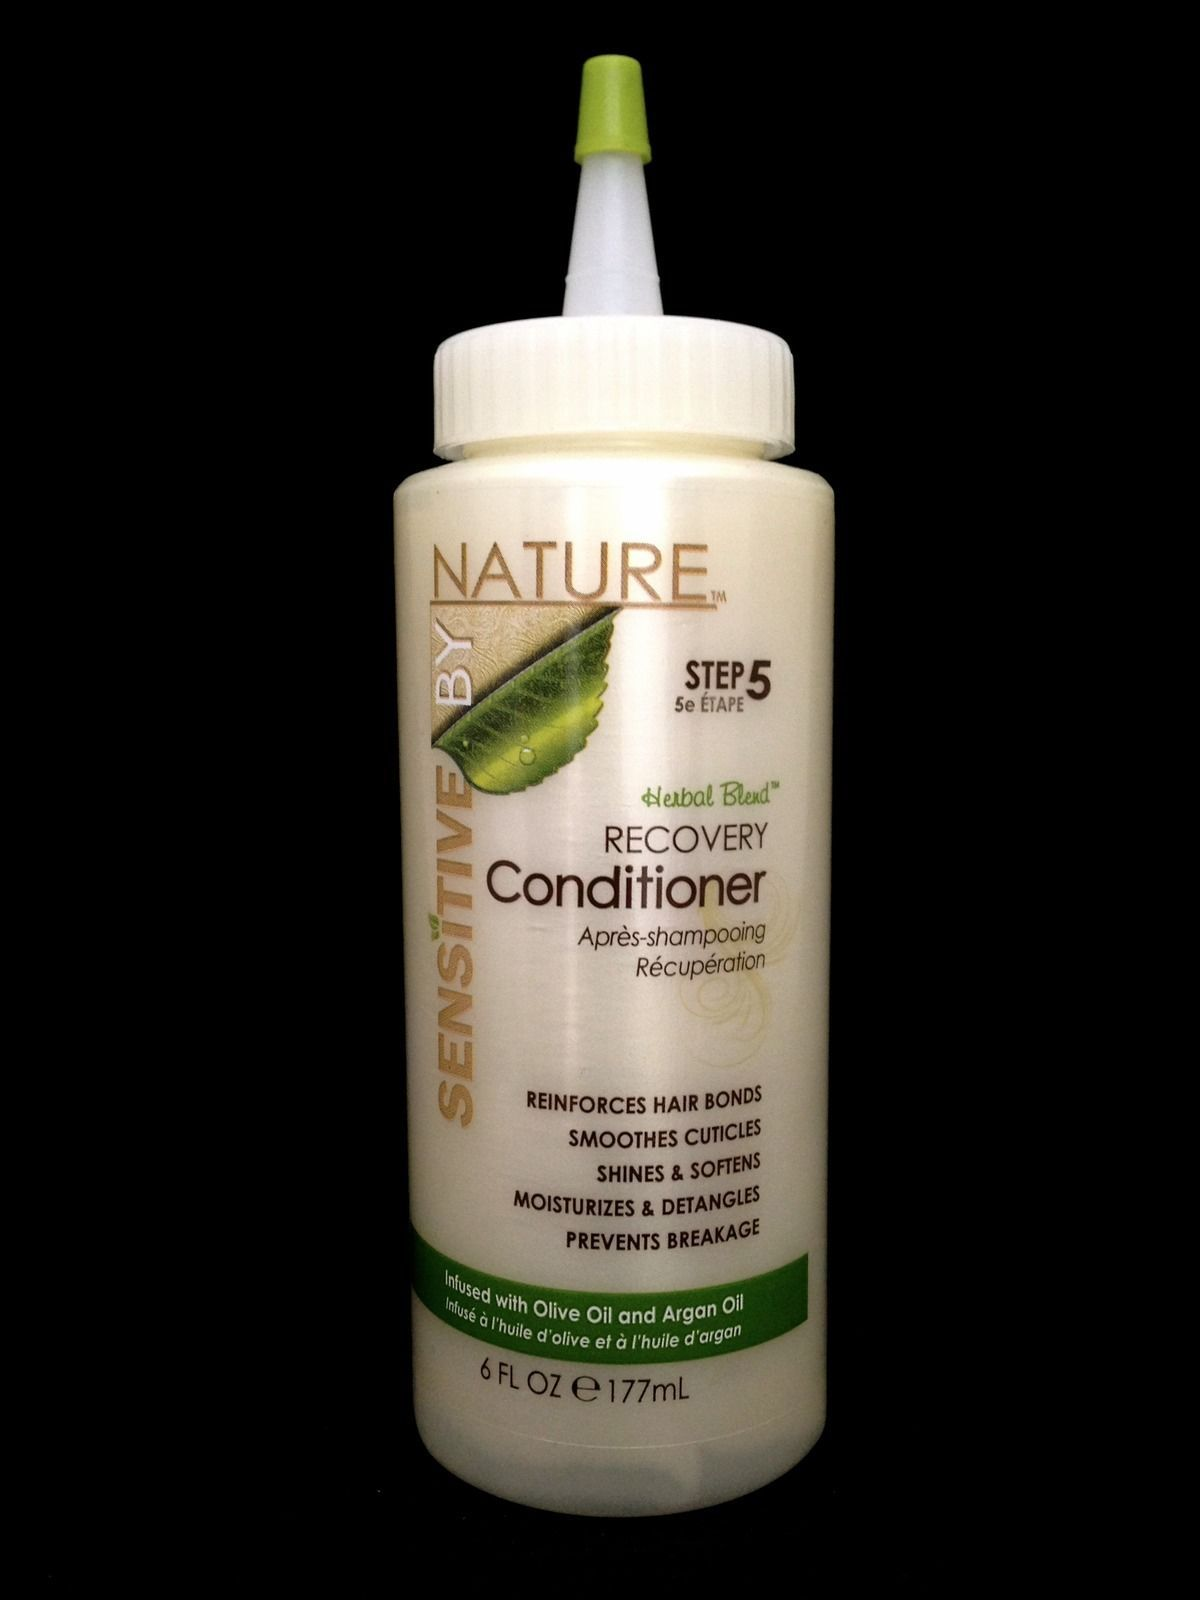 SENSITIVE BY NATURE HERBAL BLEND RECOVERY CONDITIONER SMOOTHES CUTICLES 6oz